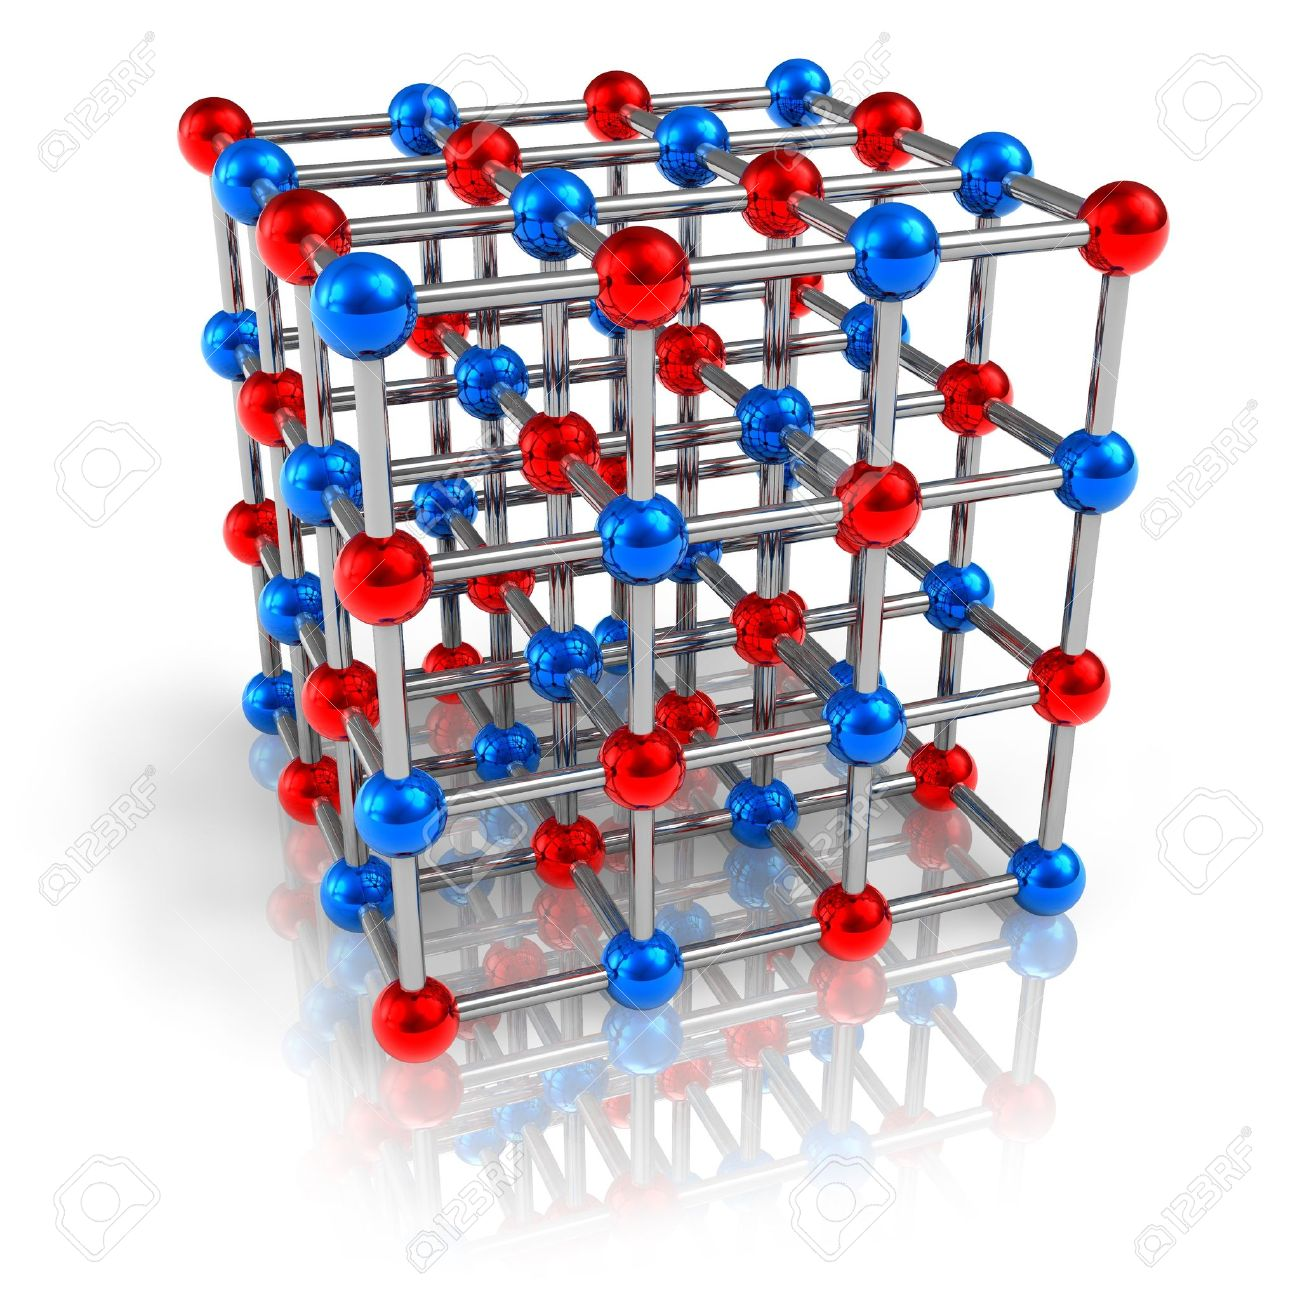 Model of molecular structure isolated on white reflective background Stock Photo - 9647493